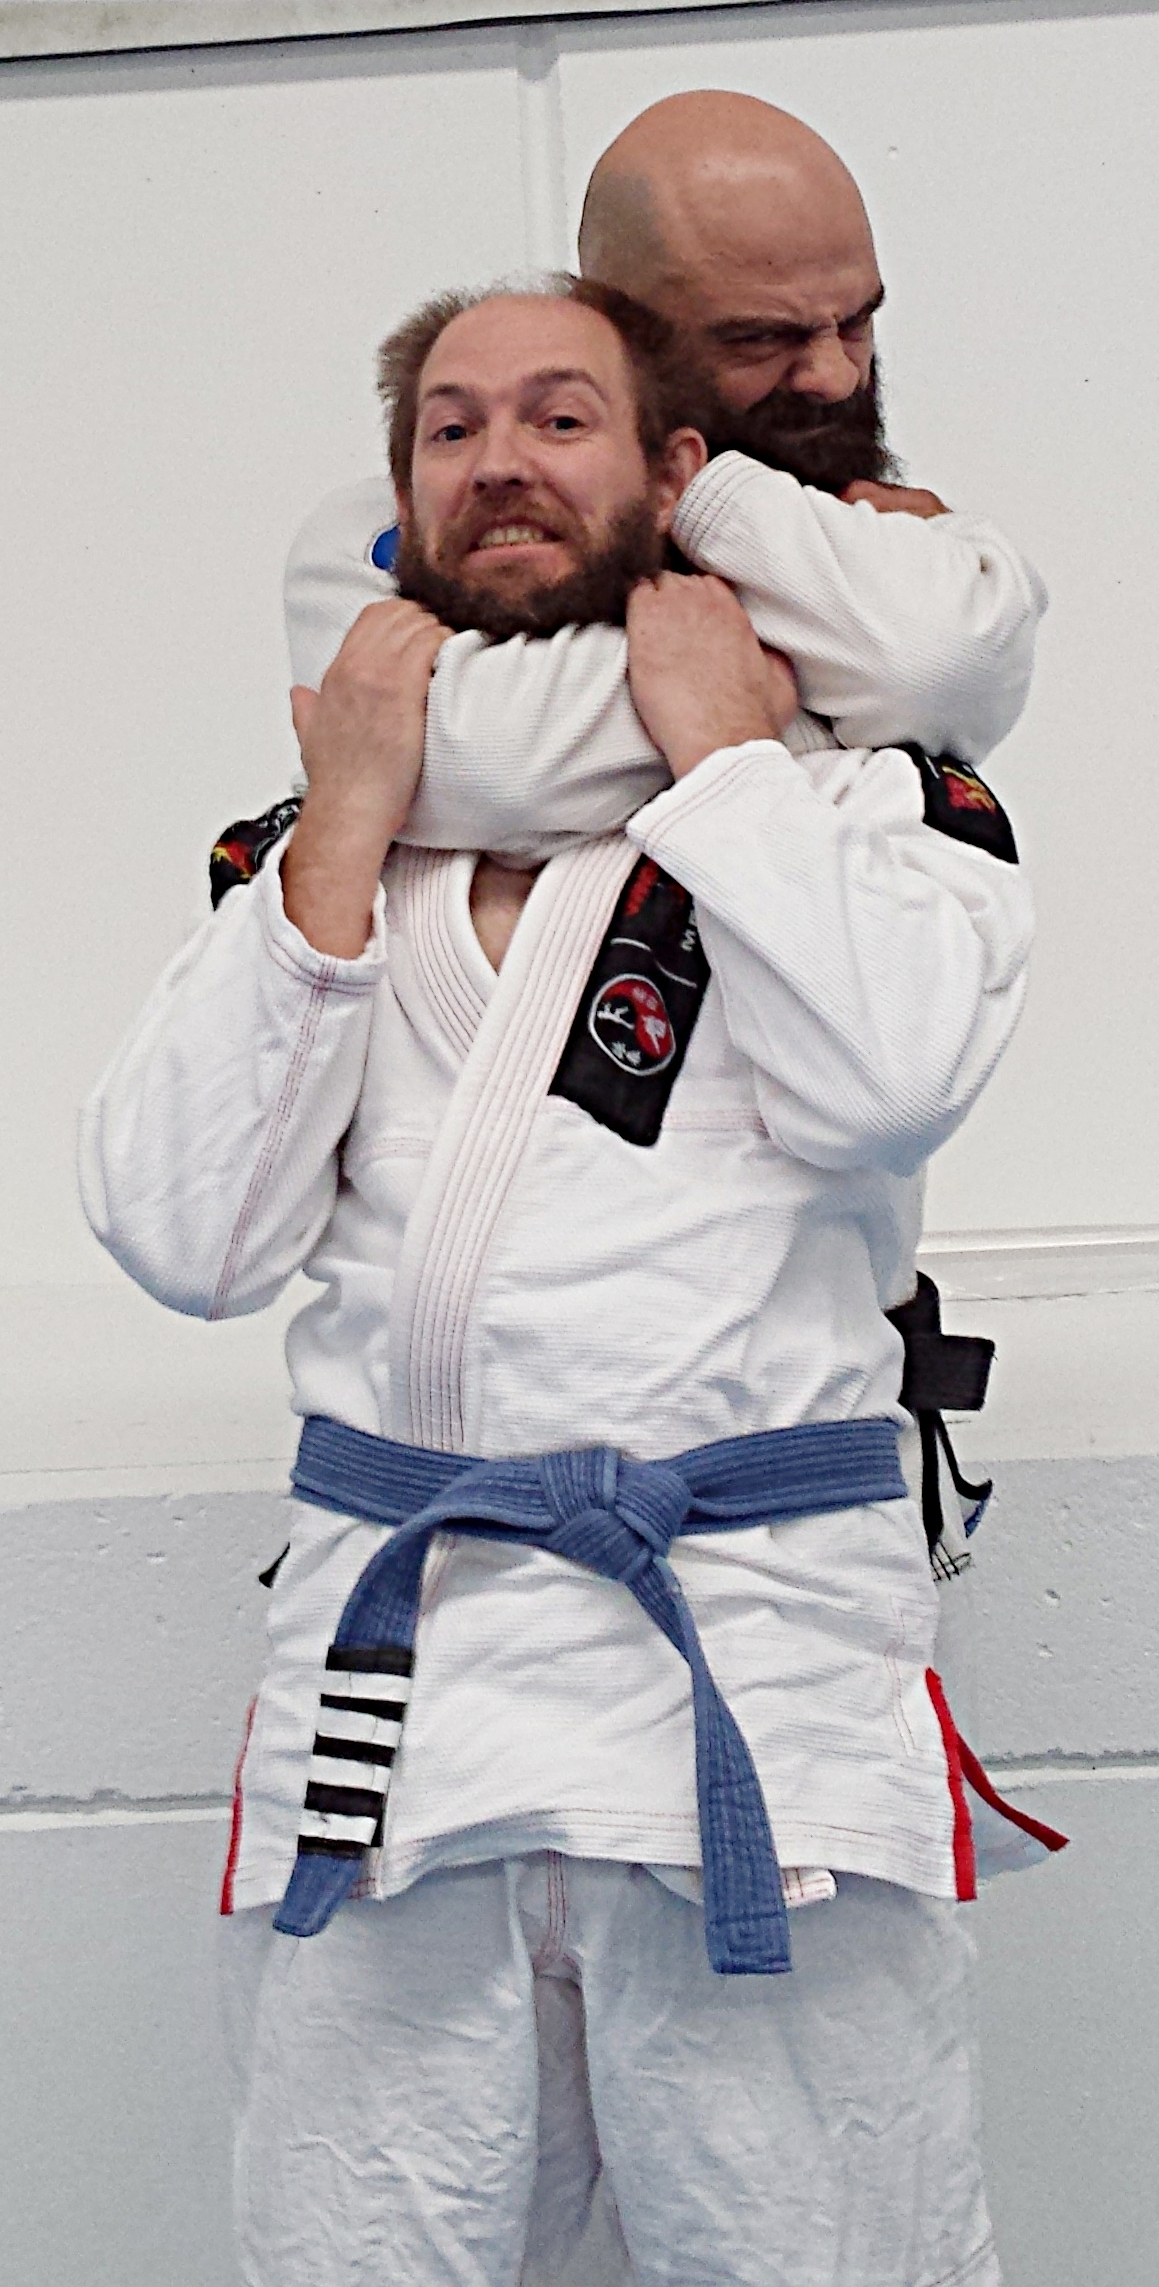 Declan with his Gracie Jiu-Jitsu teacher, Phillip Grapsas. - Since 2012, Declan has learnt Gracie Jiu-Jitsu from self-defence expert, Phillip Grapsas, a renowned first degree black belt in Brazilian Jiu-Jitsu under eighth degree coral belt, Master Pedro Sauer. Declan received his blue belt in 2015, his fourth stripe in 2018, and is on track to receive his purple belt in 2019.